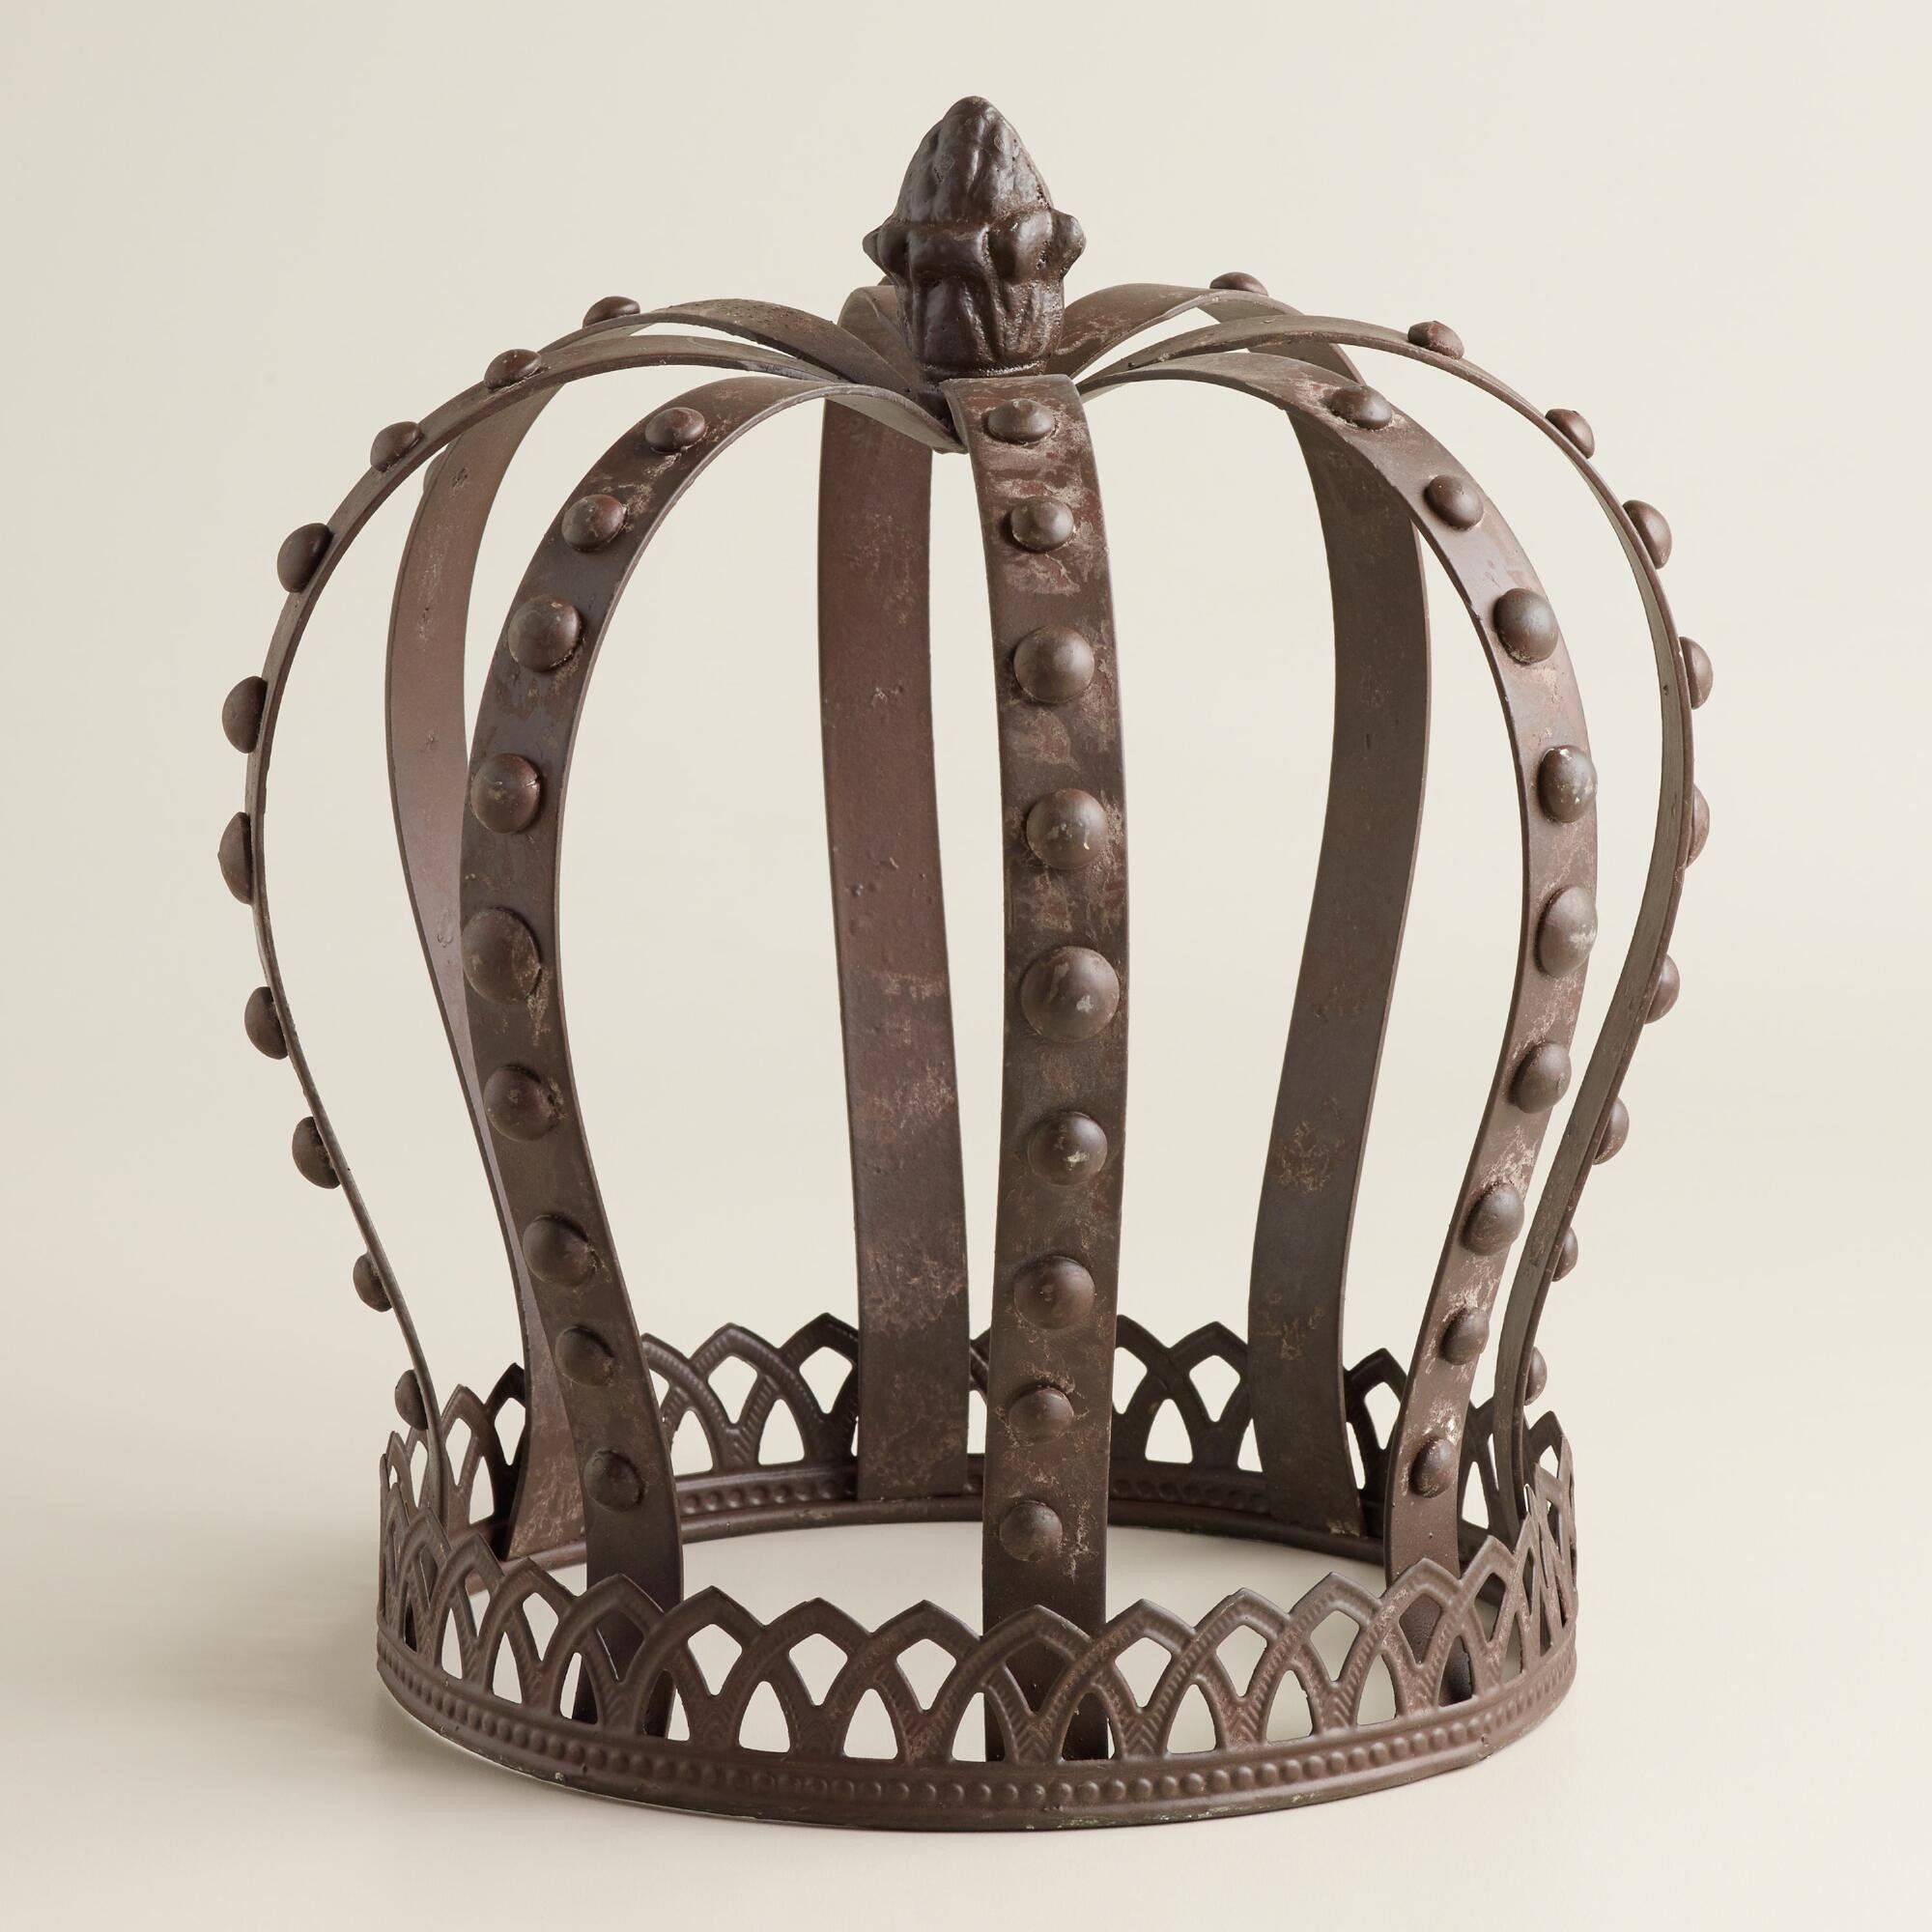 Decorative Crowns for Home Decor Fresh Iron Crown Decor